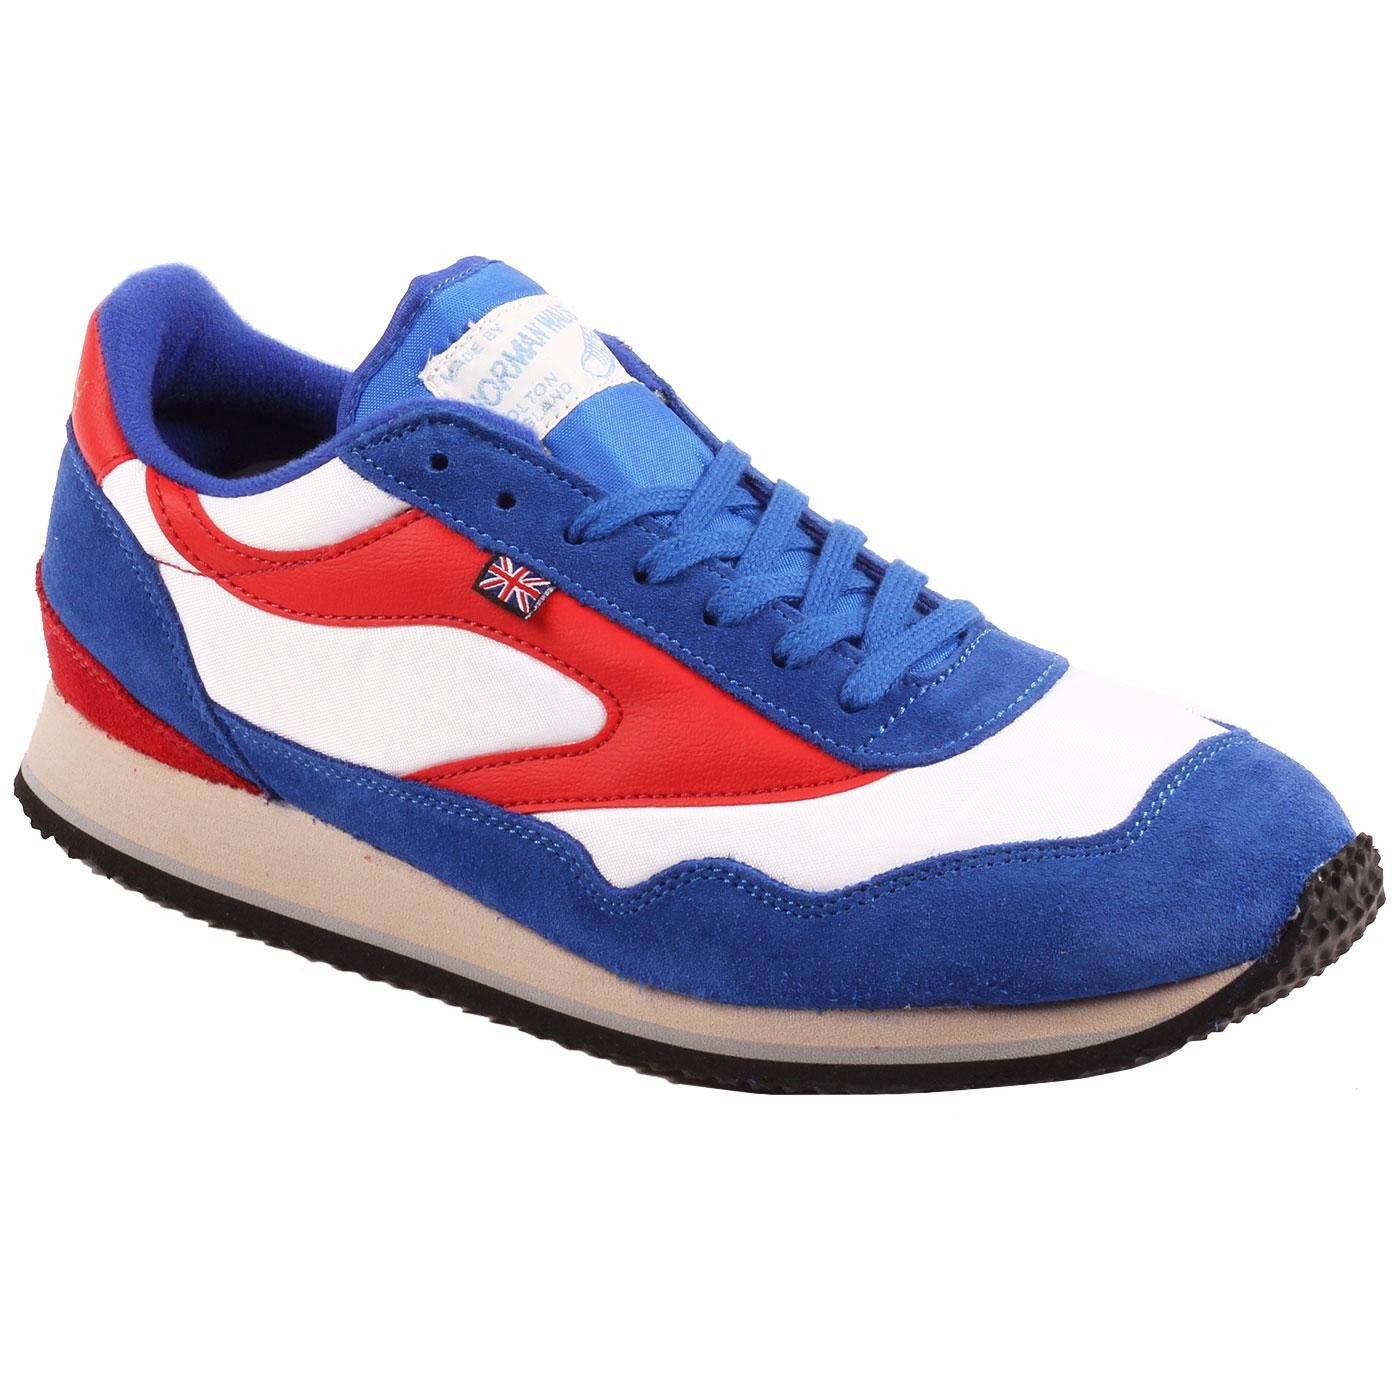 Ensign WALSH Made in England Retro Trainers W/R/B